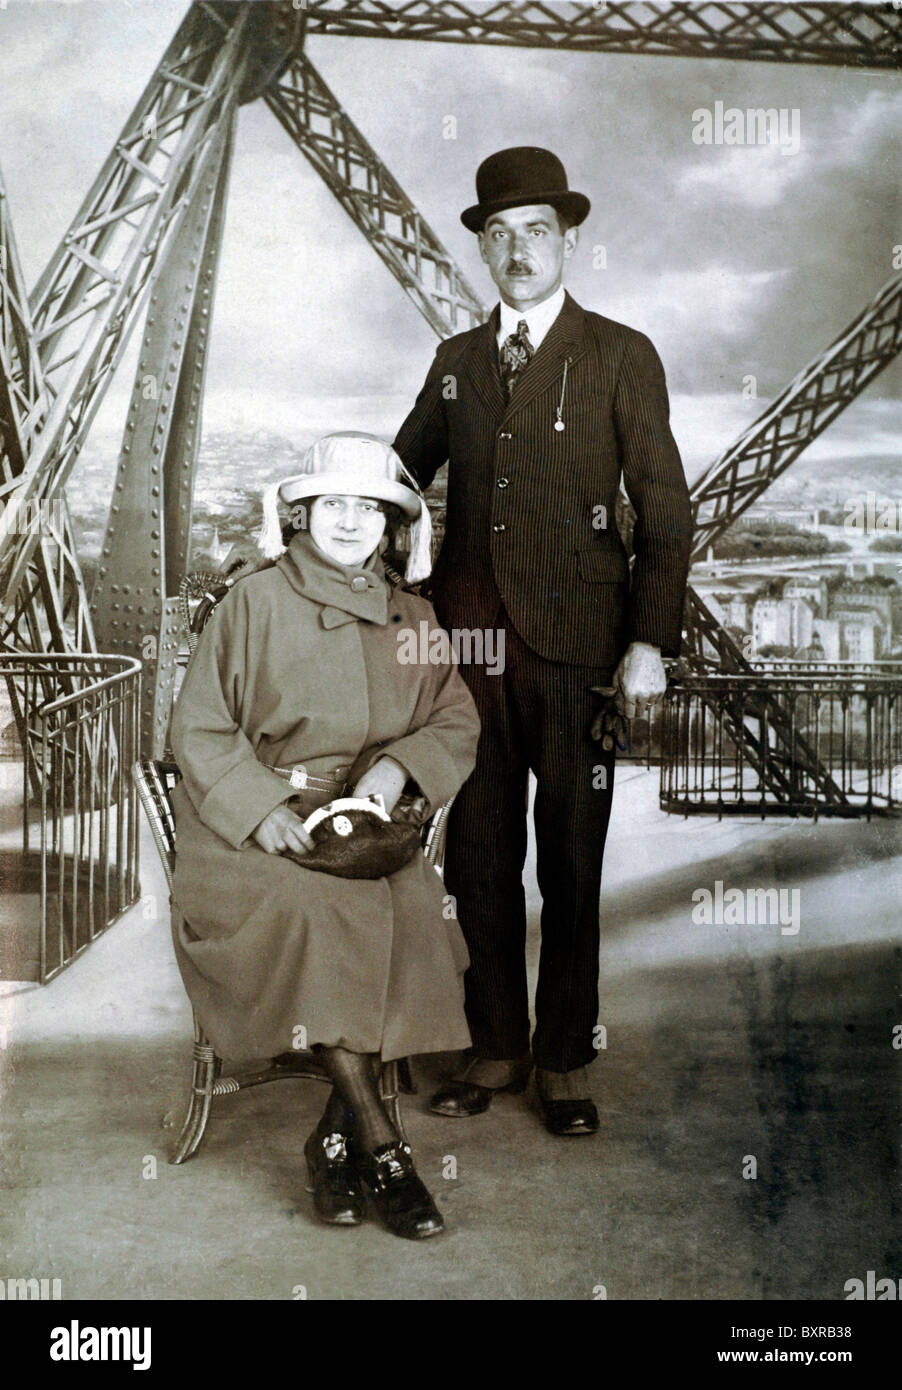 Tourist Couple Photographed on or with the Eiffel Tower in the Background, Paris (c1920-30s) Formal Studio-like - Stock Image